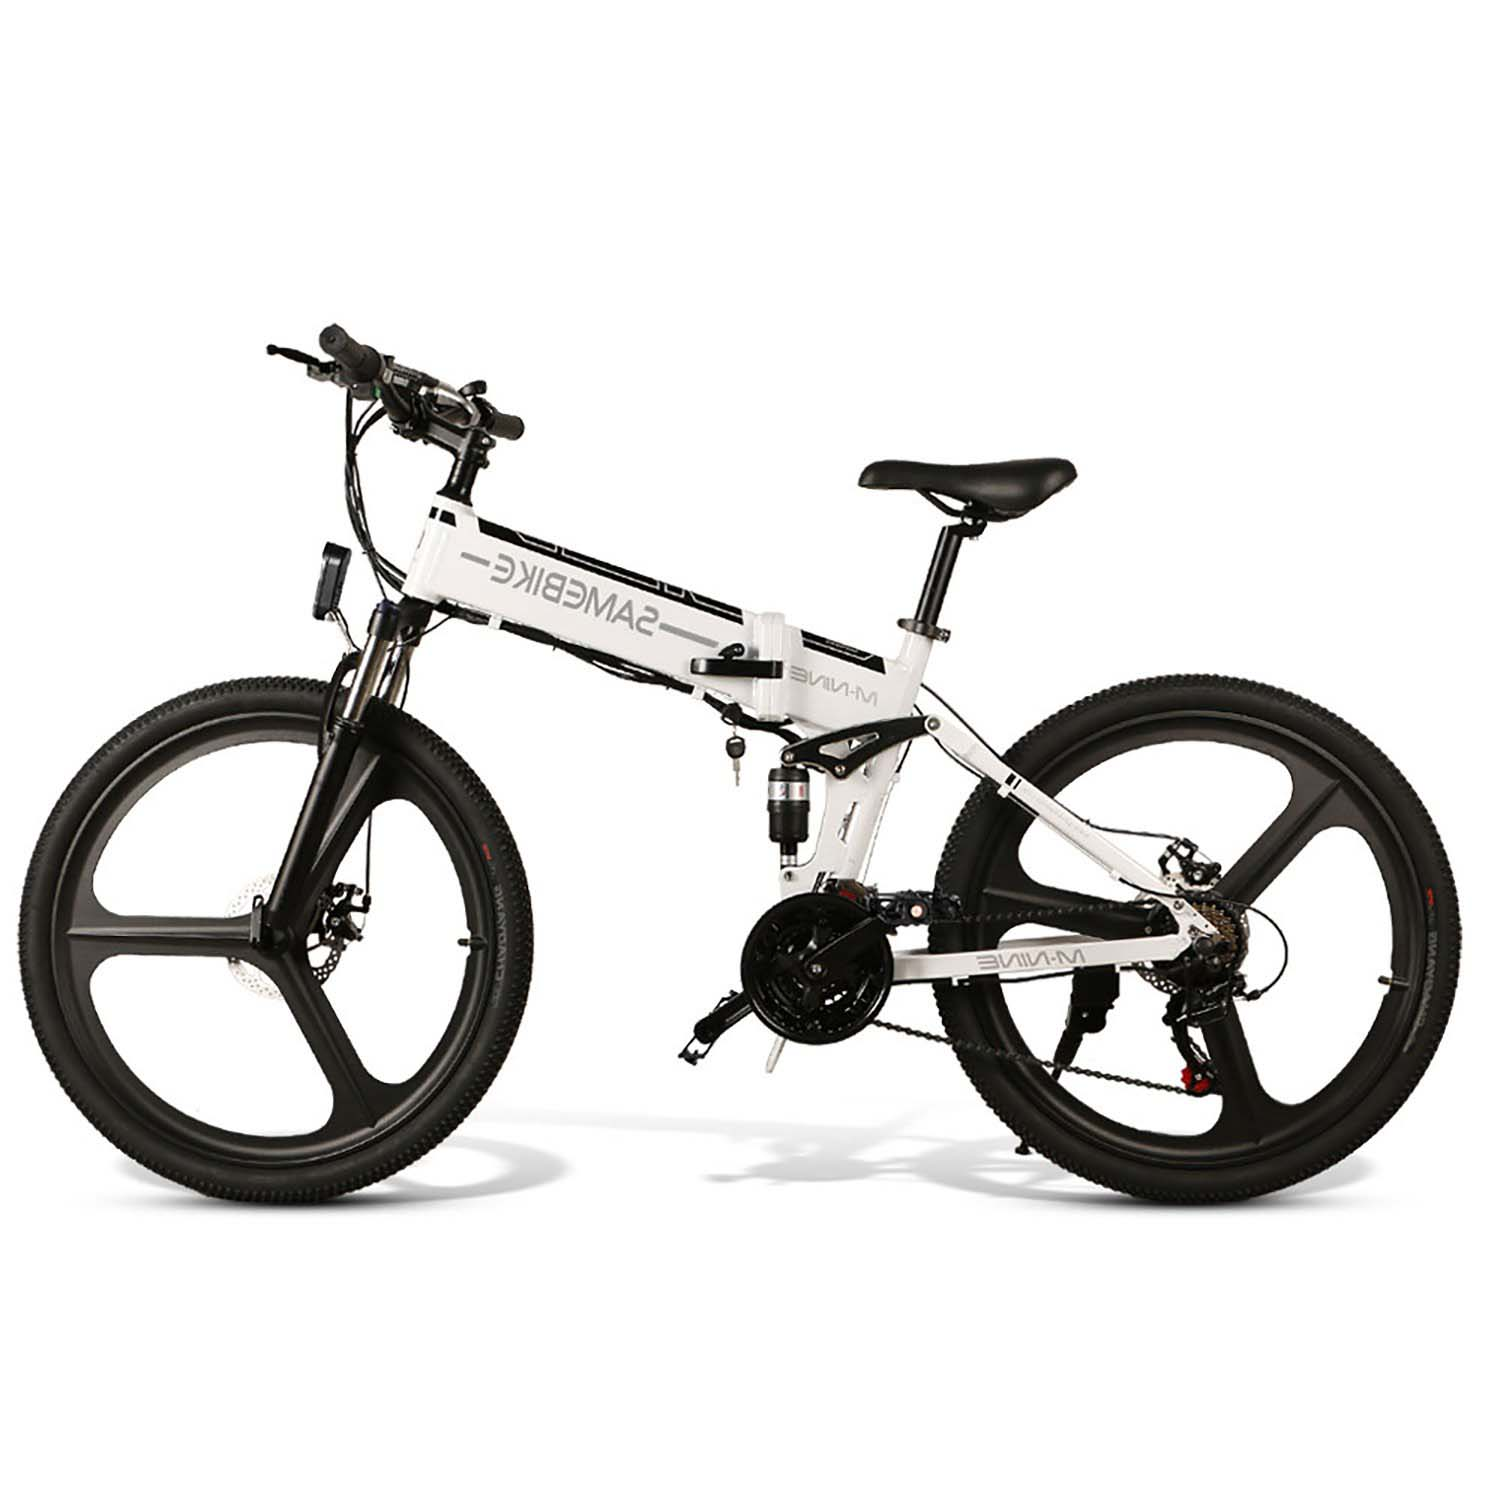 SAMEBIKE LO26 Folding Electric Bike 26 Inch Tires 350W Motor 10.4Ah Battery Max 35 KPH Ship from Poland Warehouse